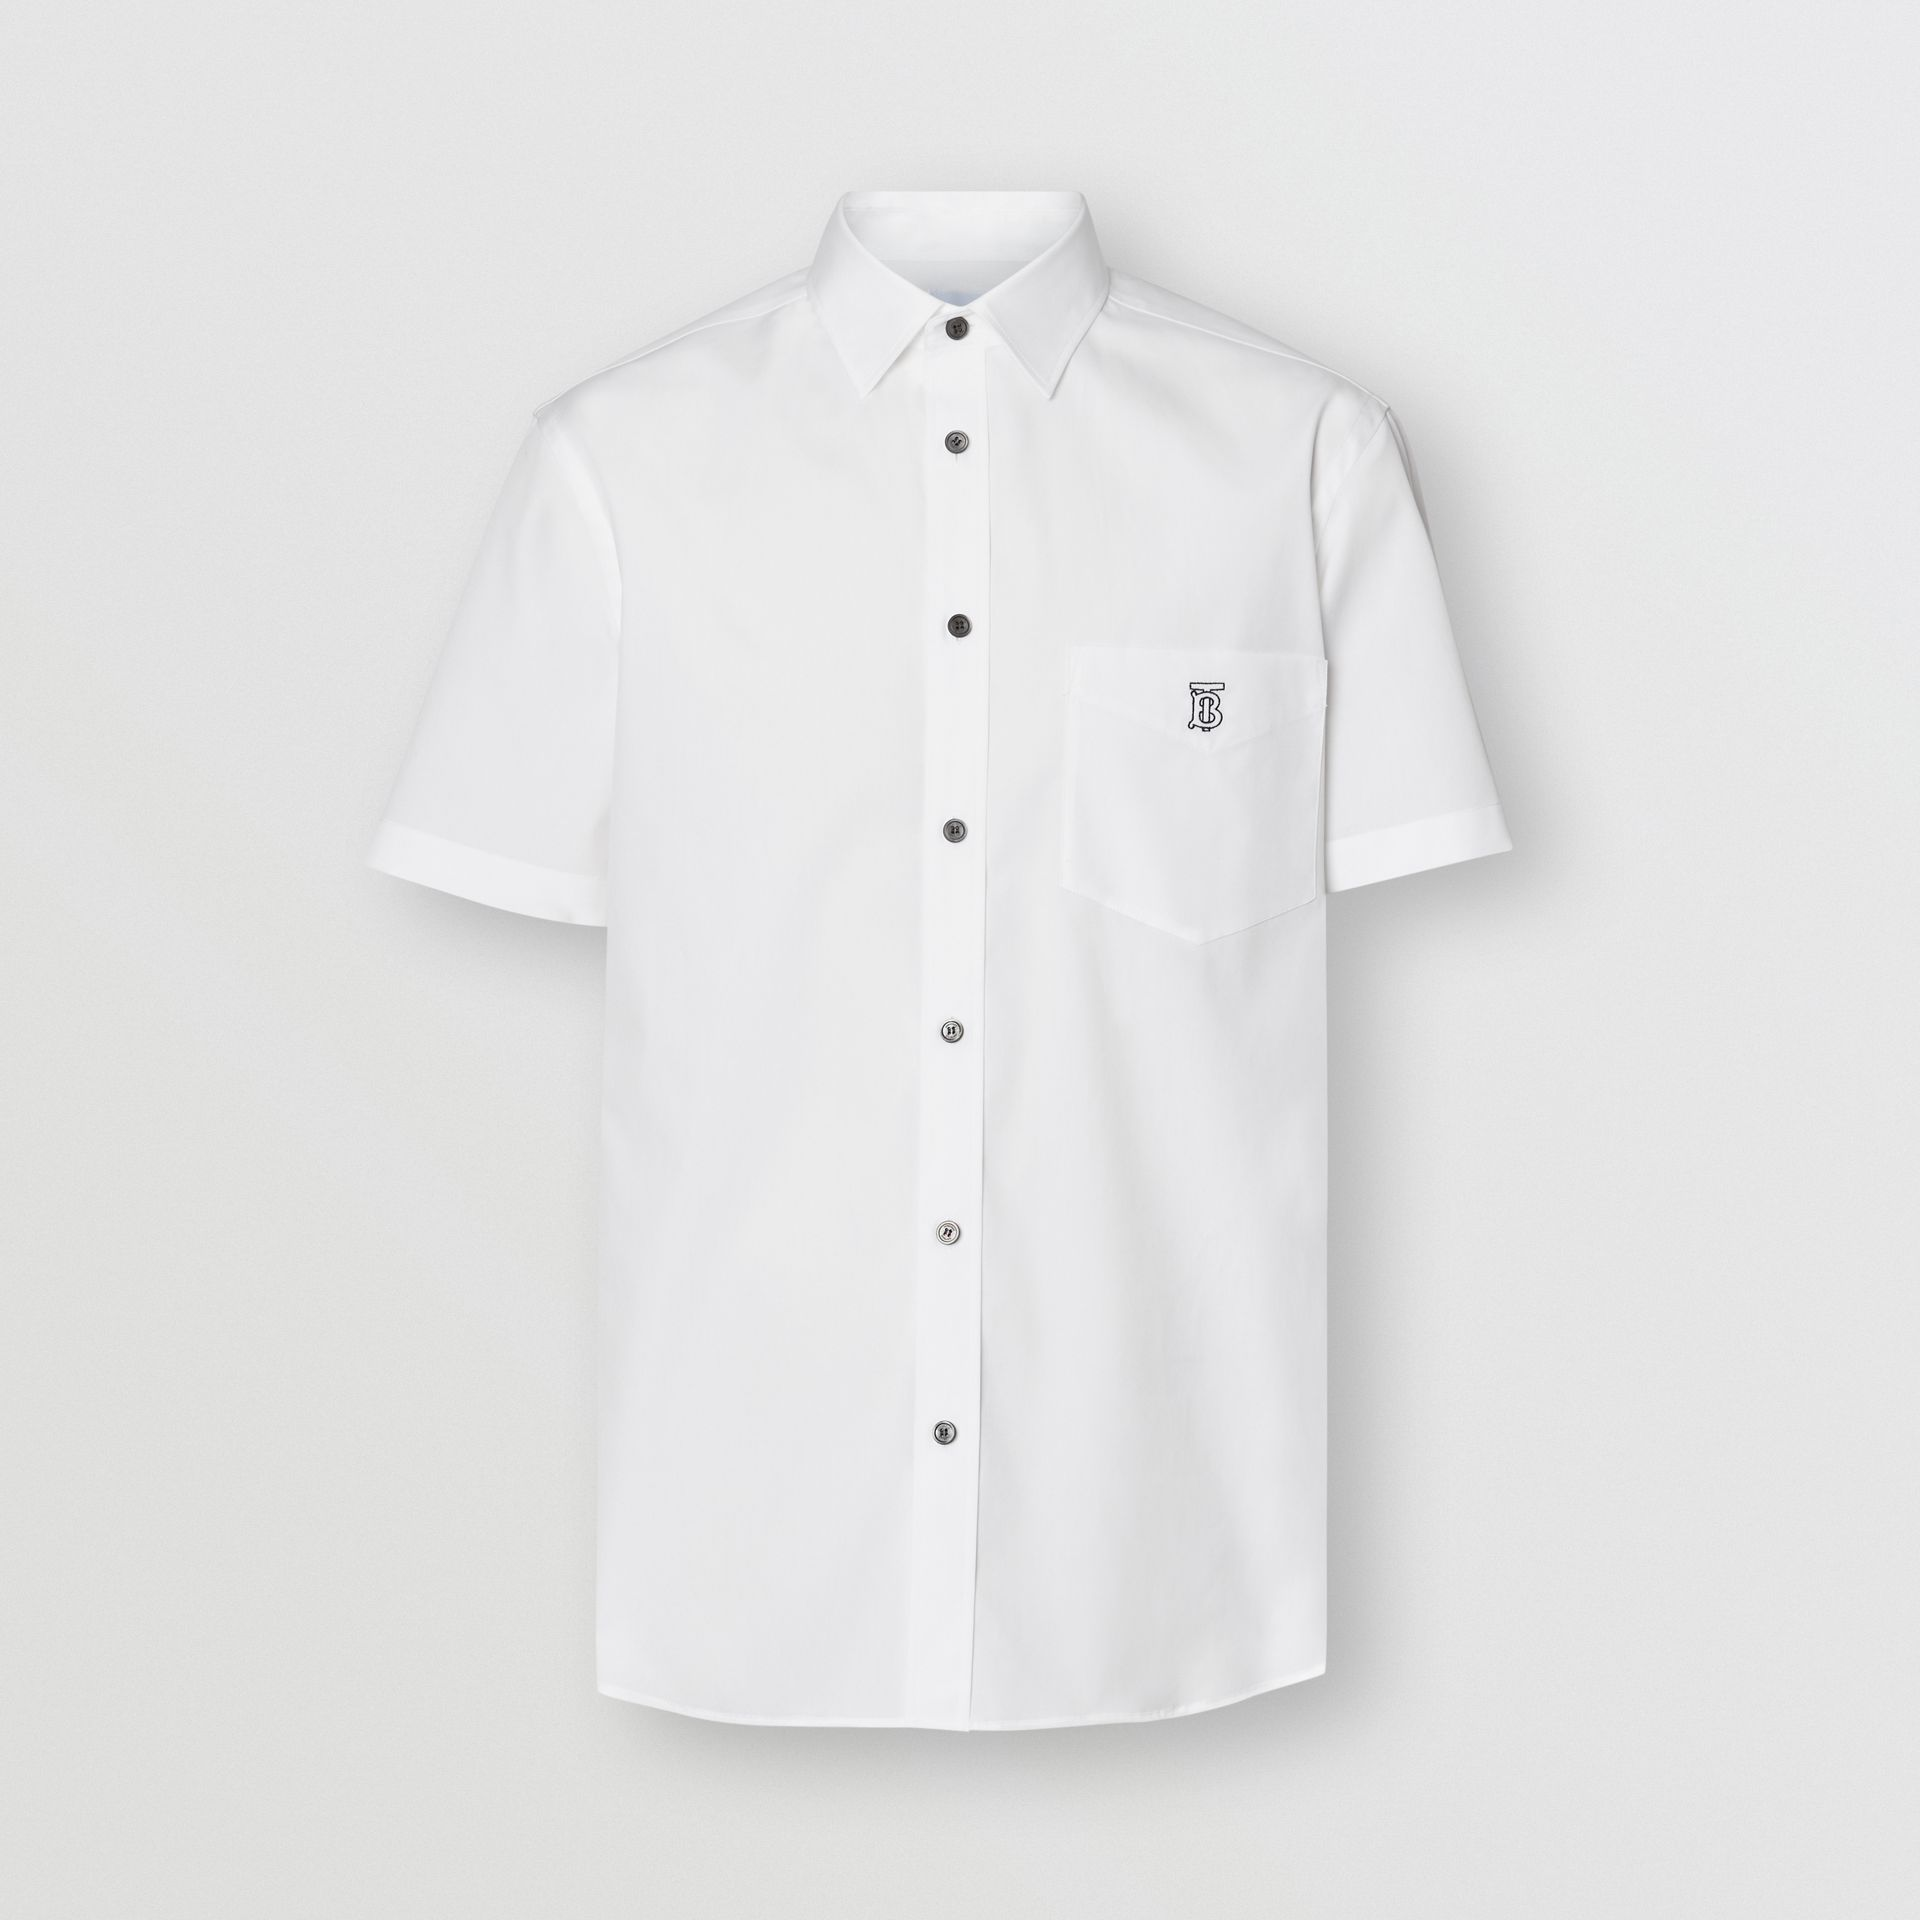 Short-sleeve Monogram Motif Stretch Cotton Shirt in White - Men | Burberry Canada - gallery image 3